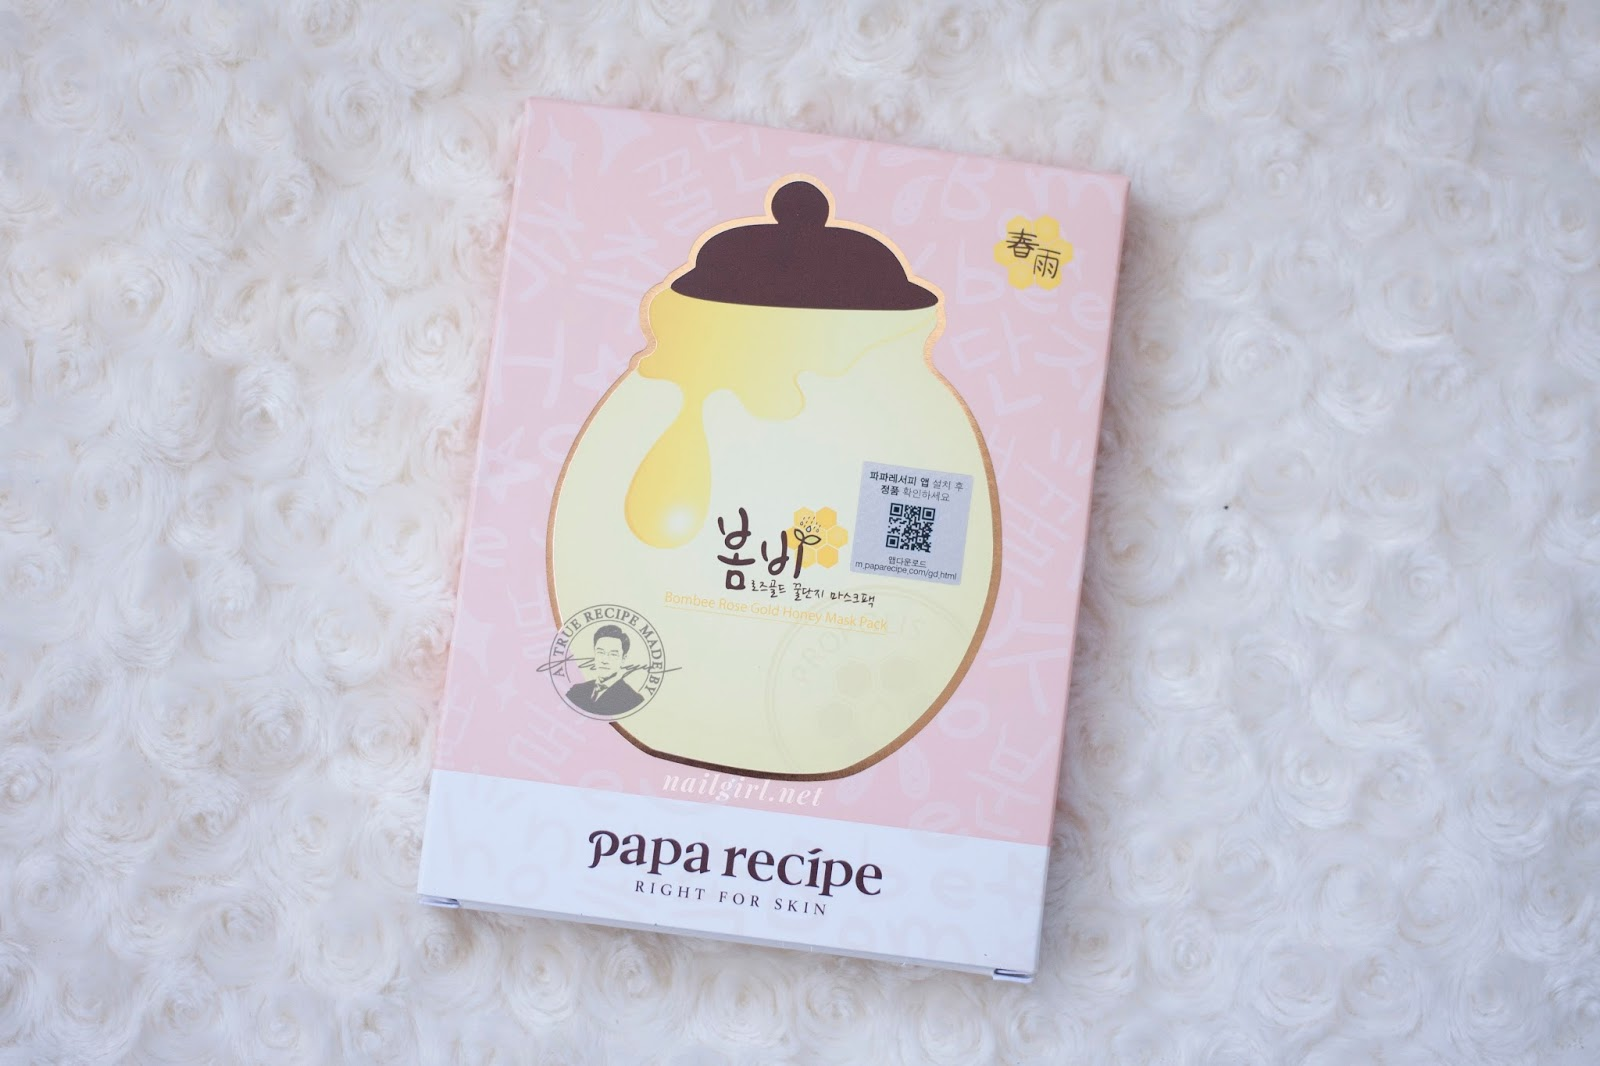 papa recipe rose gold honey mask review packaging